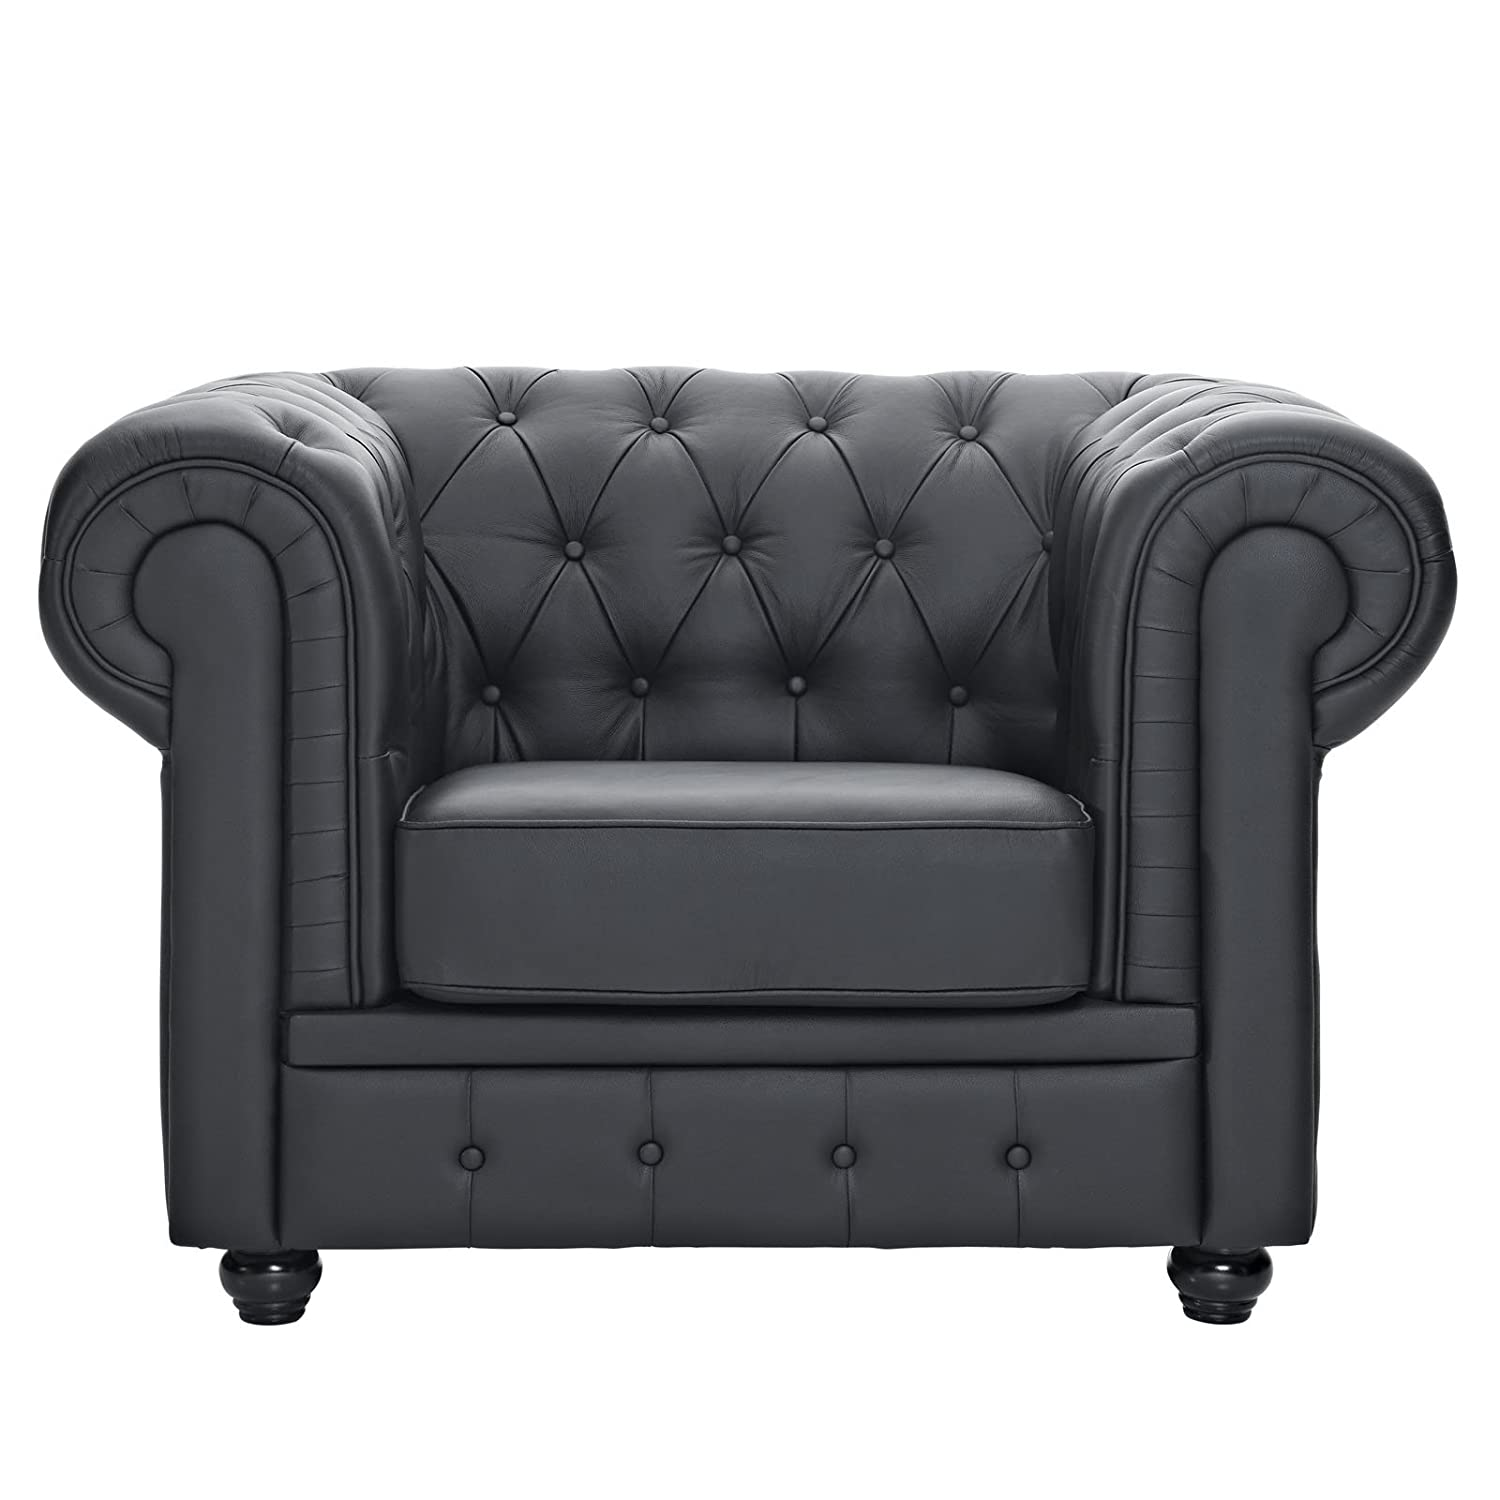 Amazon Modway Chesterfield Armchair in Black Leather and